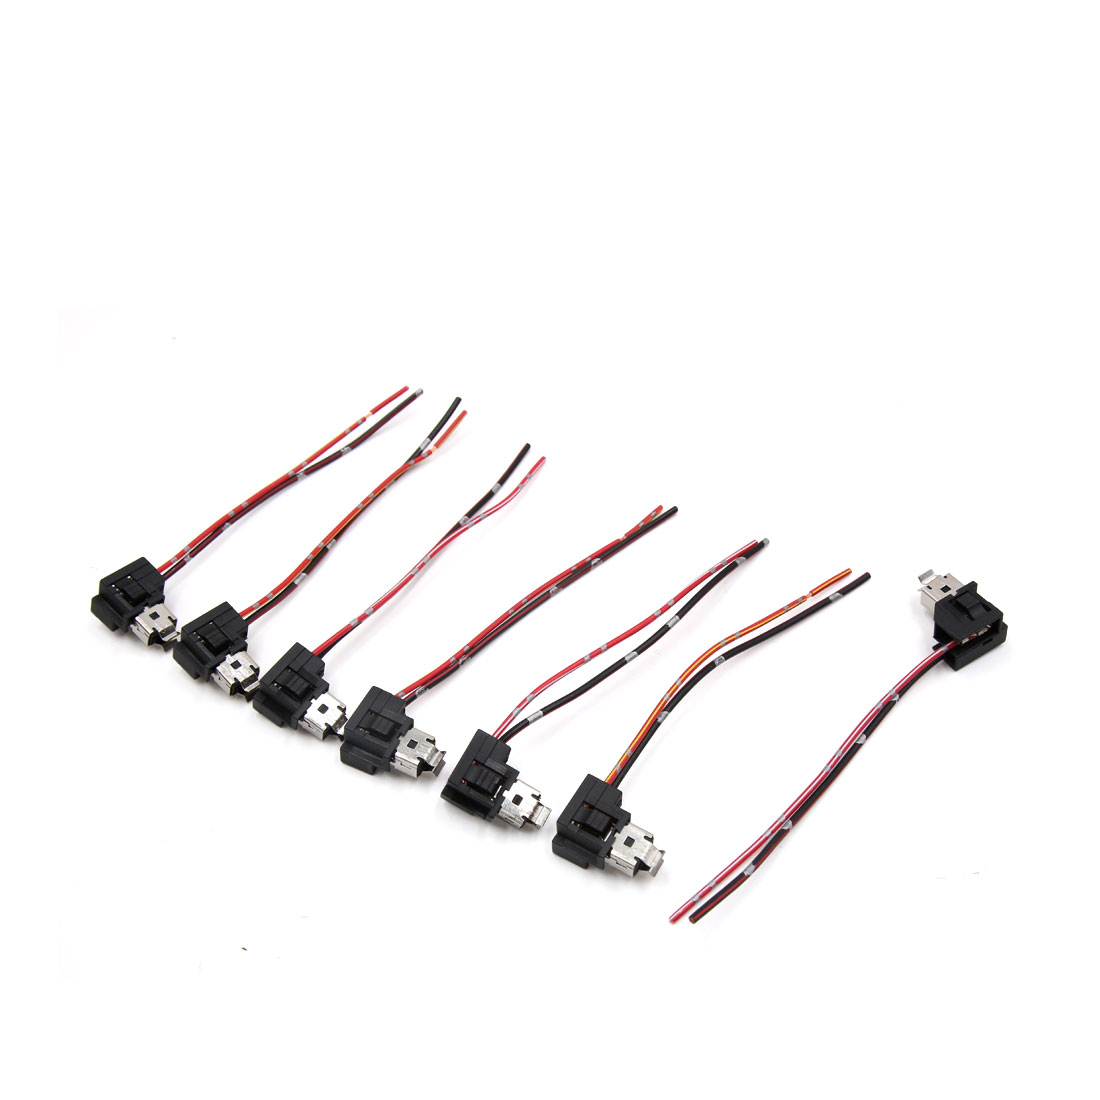 small resolution of 7pcs h1 dc 12v car bulb holder light socket headlight connector wire harness